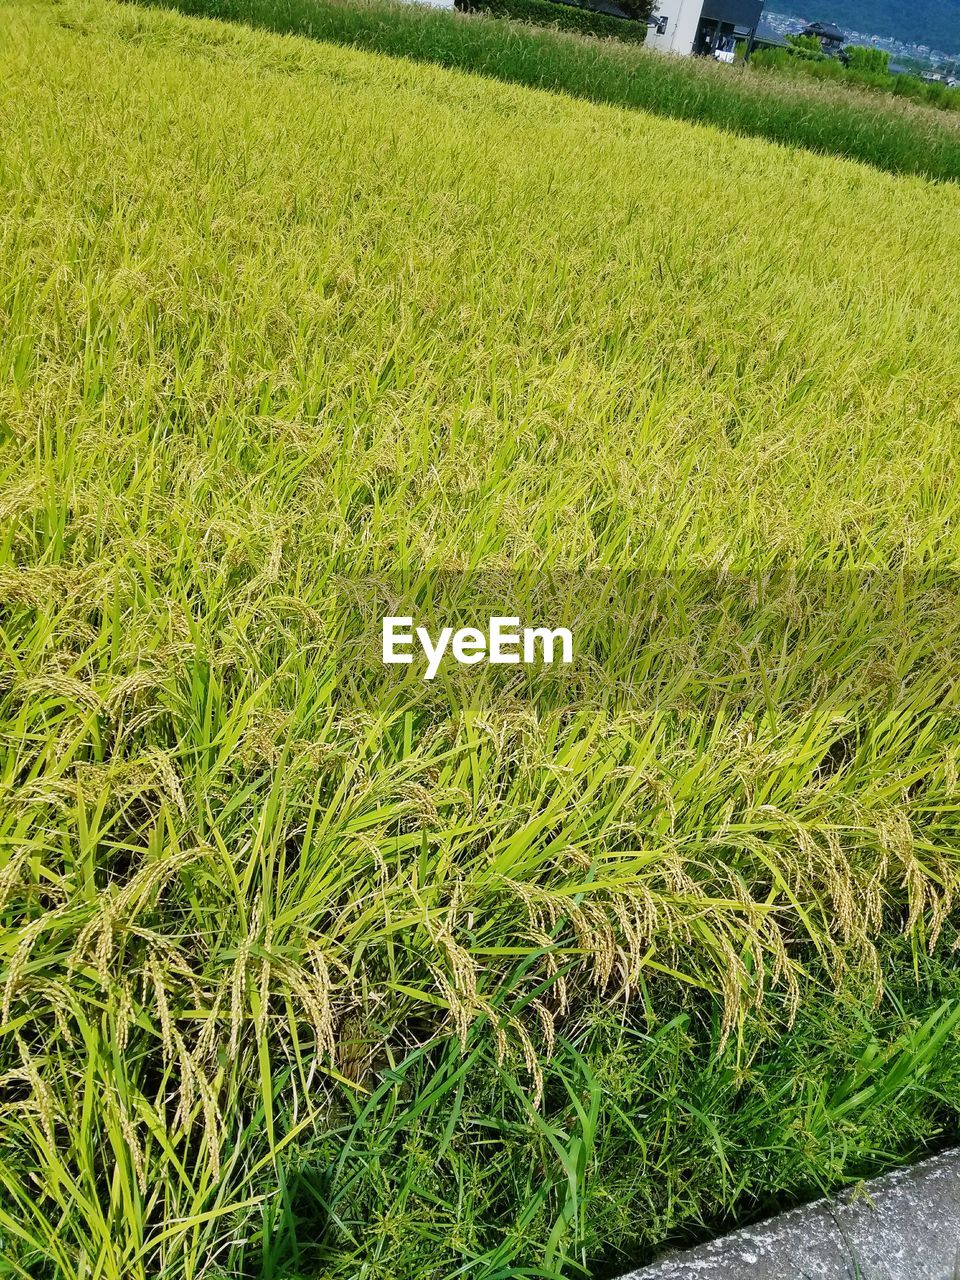 growth, grass, agriculture, field, green color, farm, nature, crop, no people, day, tranquility, outdoors, rural scene, beauty in nature, landscape, scenics, freshness, close-up